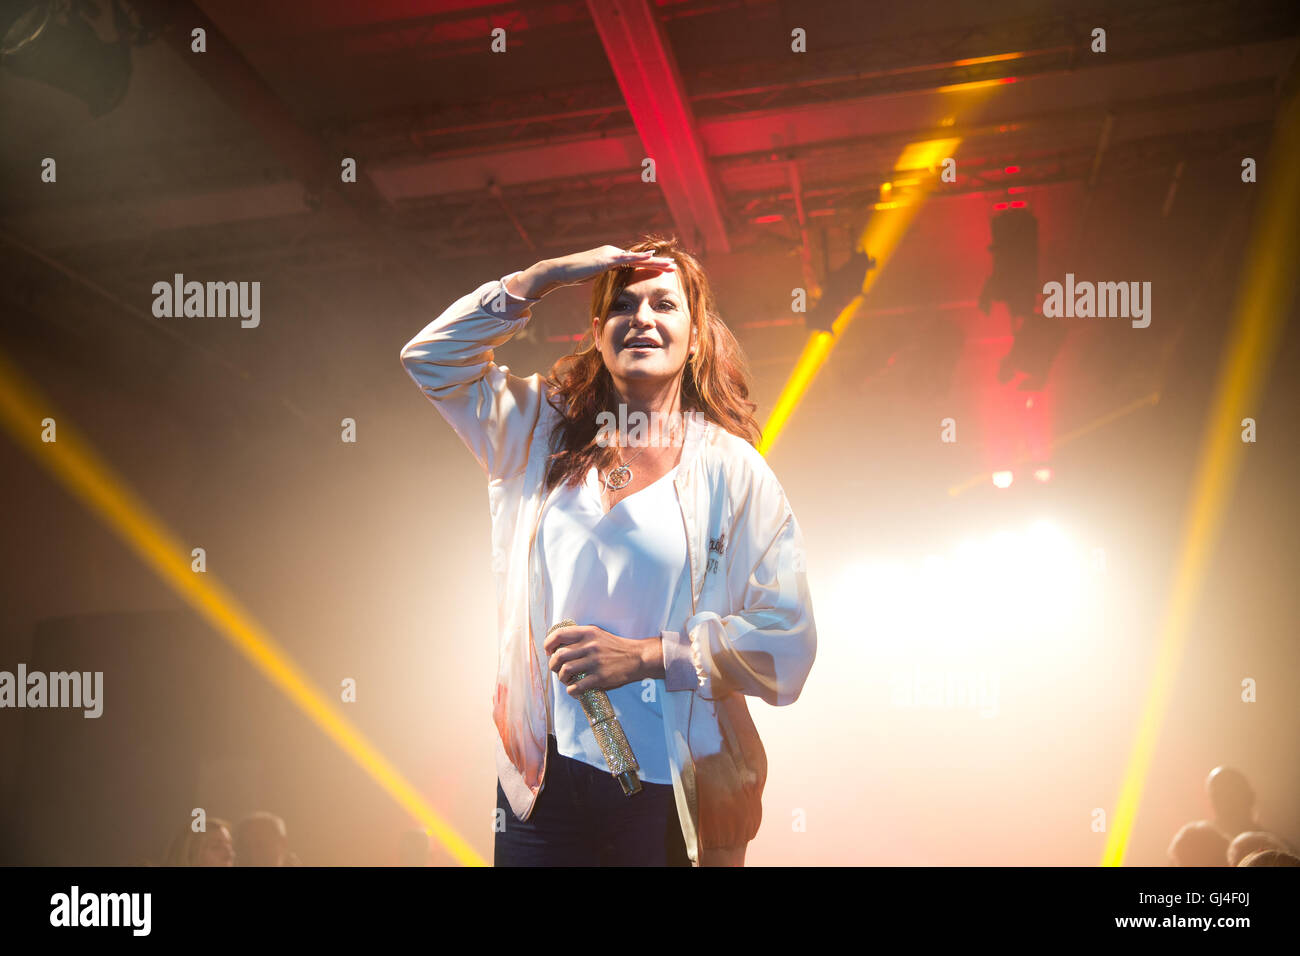 Andrea berg 2016 hd image free - 11th Aug 2016 Schlager Singer Andrea Berg Performing During A Club Concert At Glashaus In Berlin Germany 11 August 2016